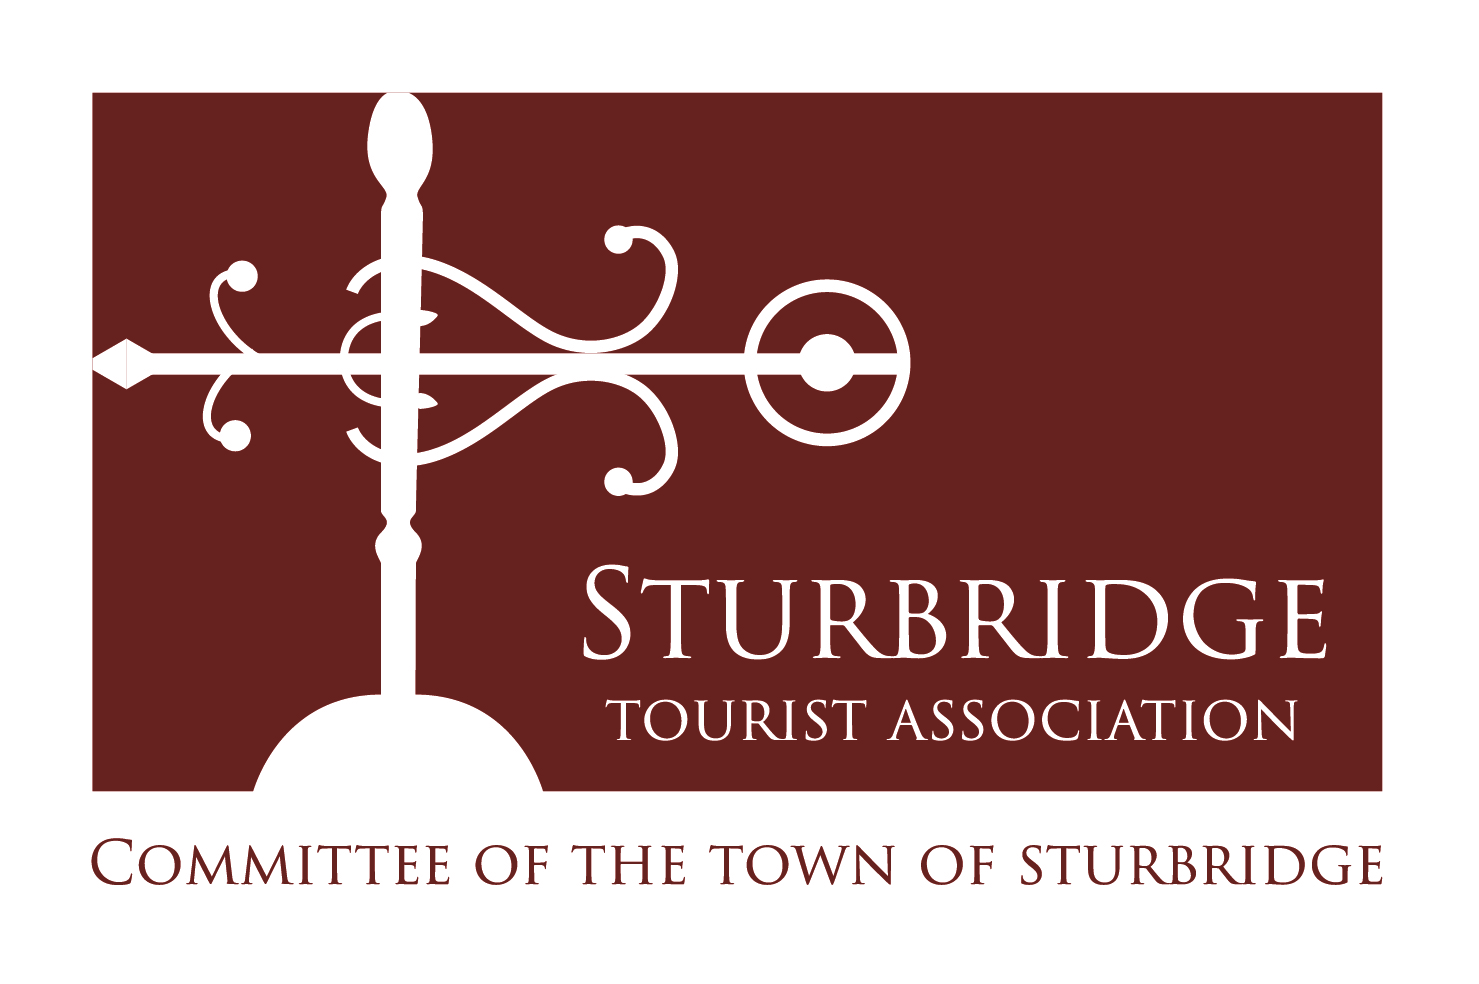 Sponsor Sturbridge Tourist Association